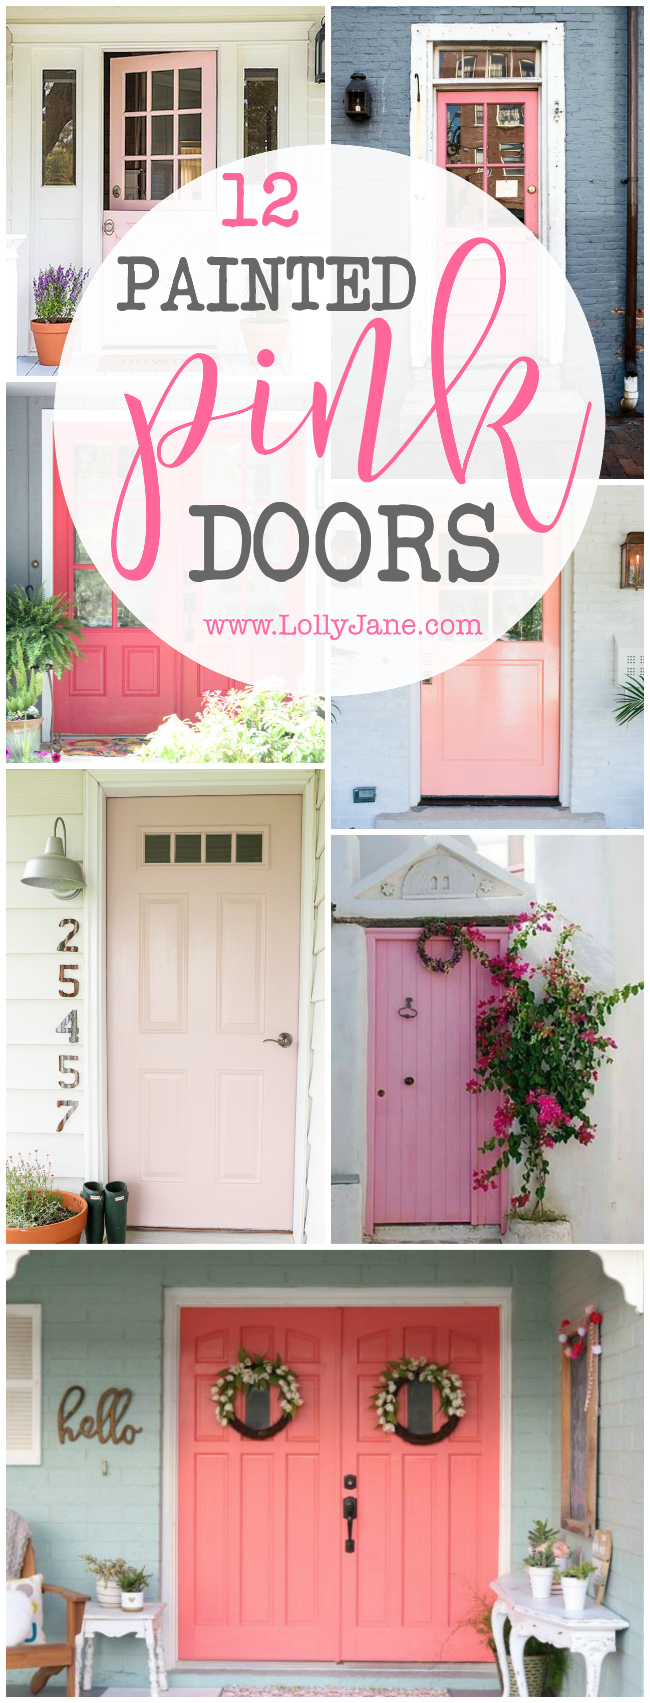 Ahh Darling Pink Painted Door Ideas Yowzas So Cute Adore All These